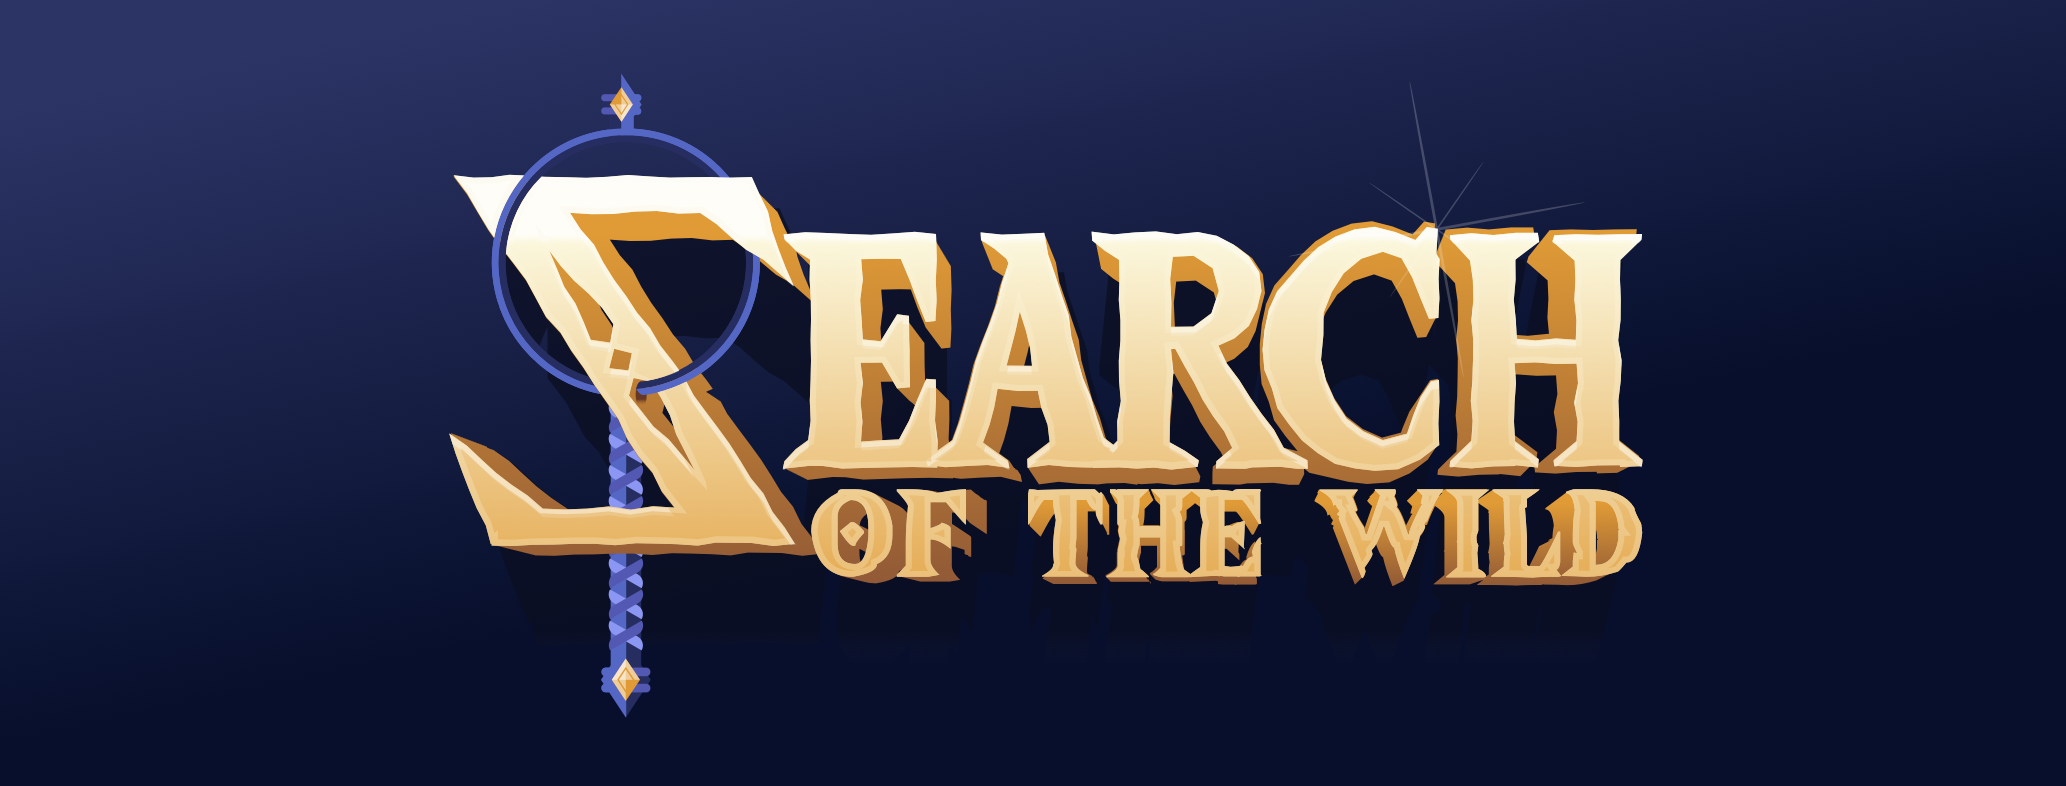 Search of the Wild Logo